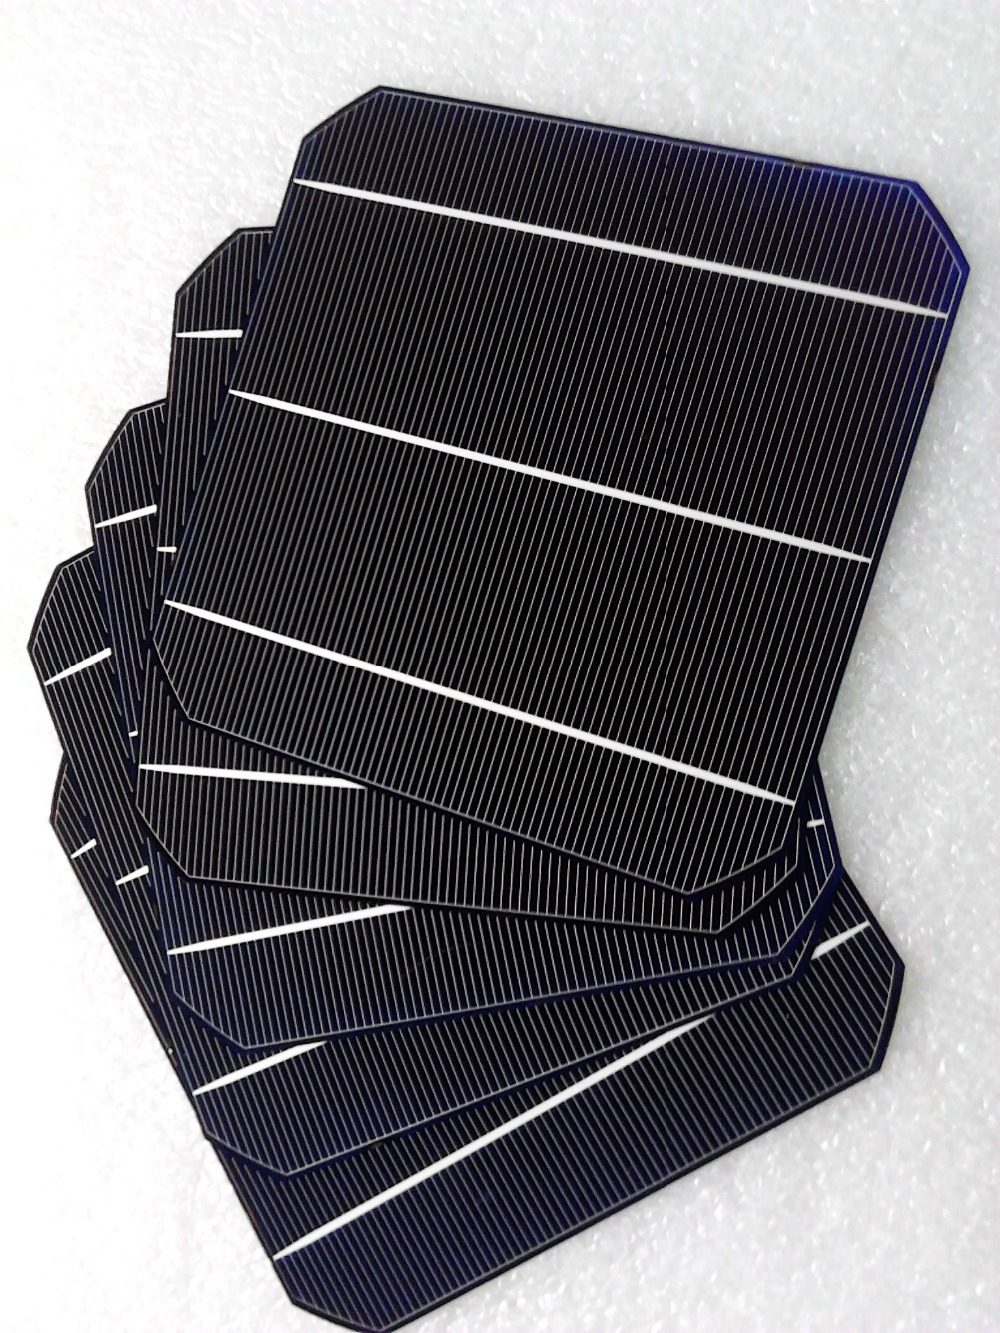 100pcs 20.4% Efficiency 6x6 Monocrystalline Solar Cells